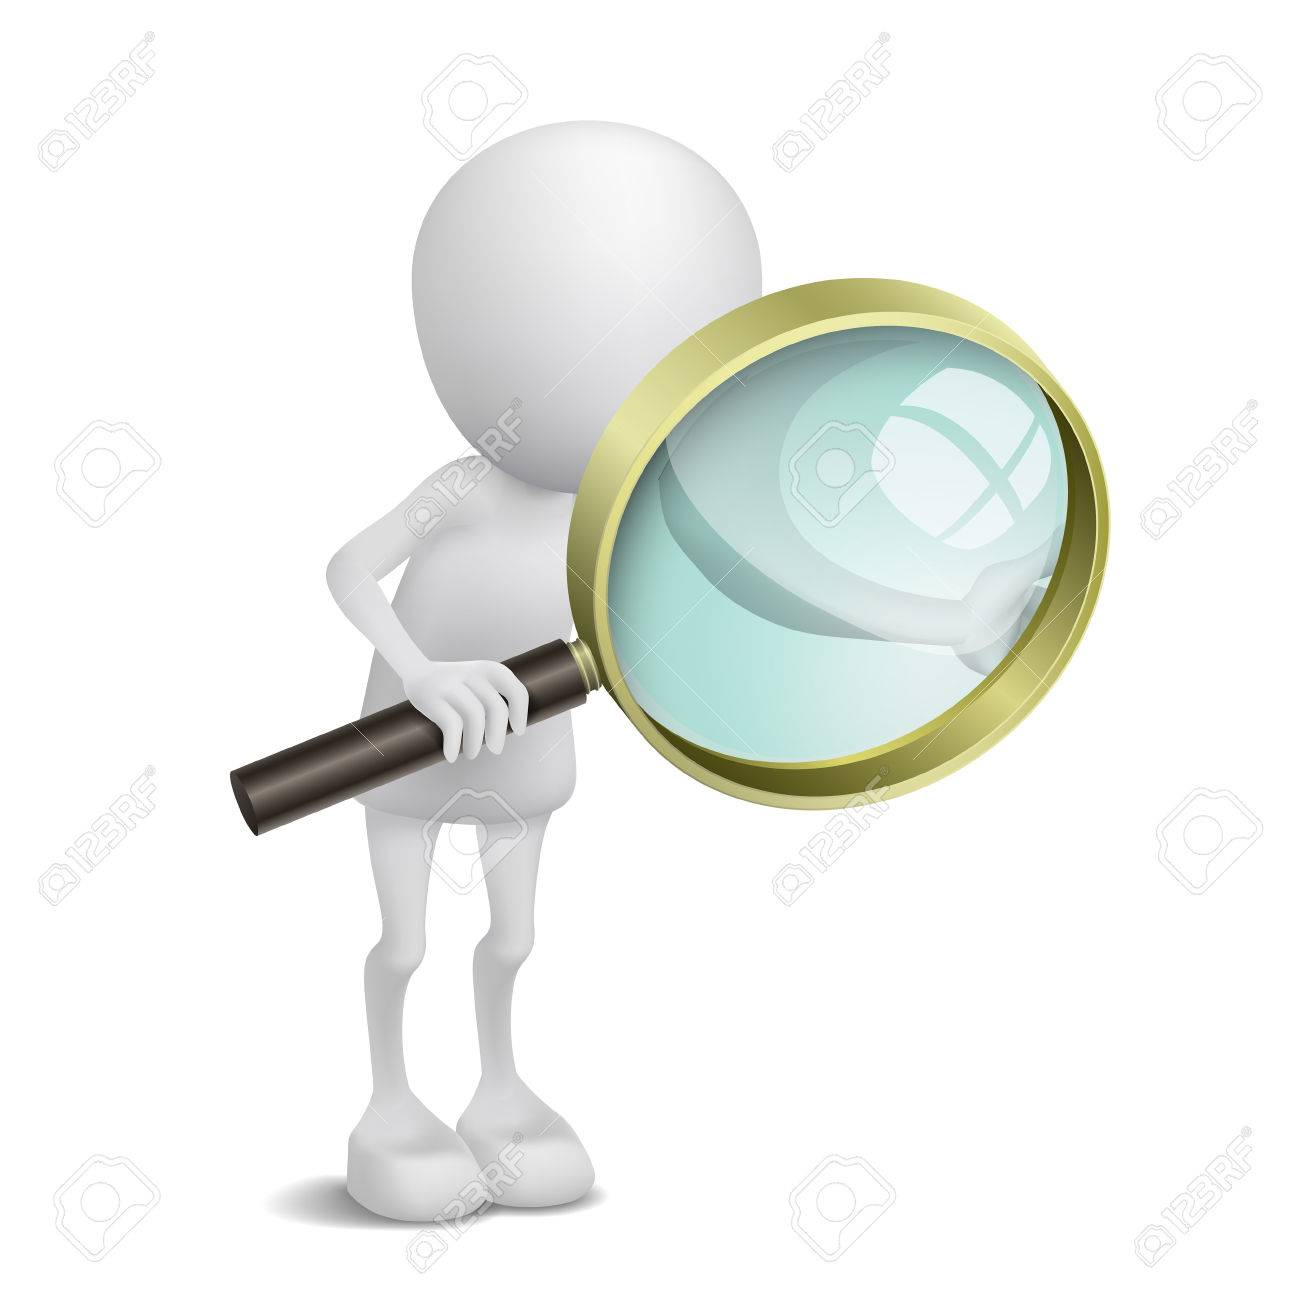 3d person is using the magnifying glass - 25026103